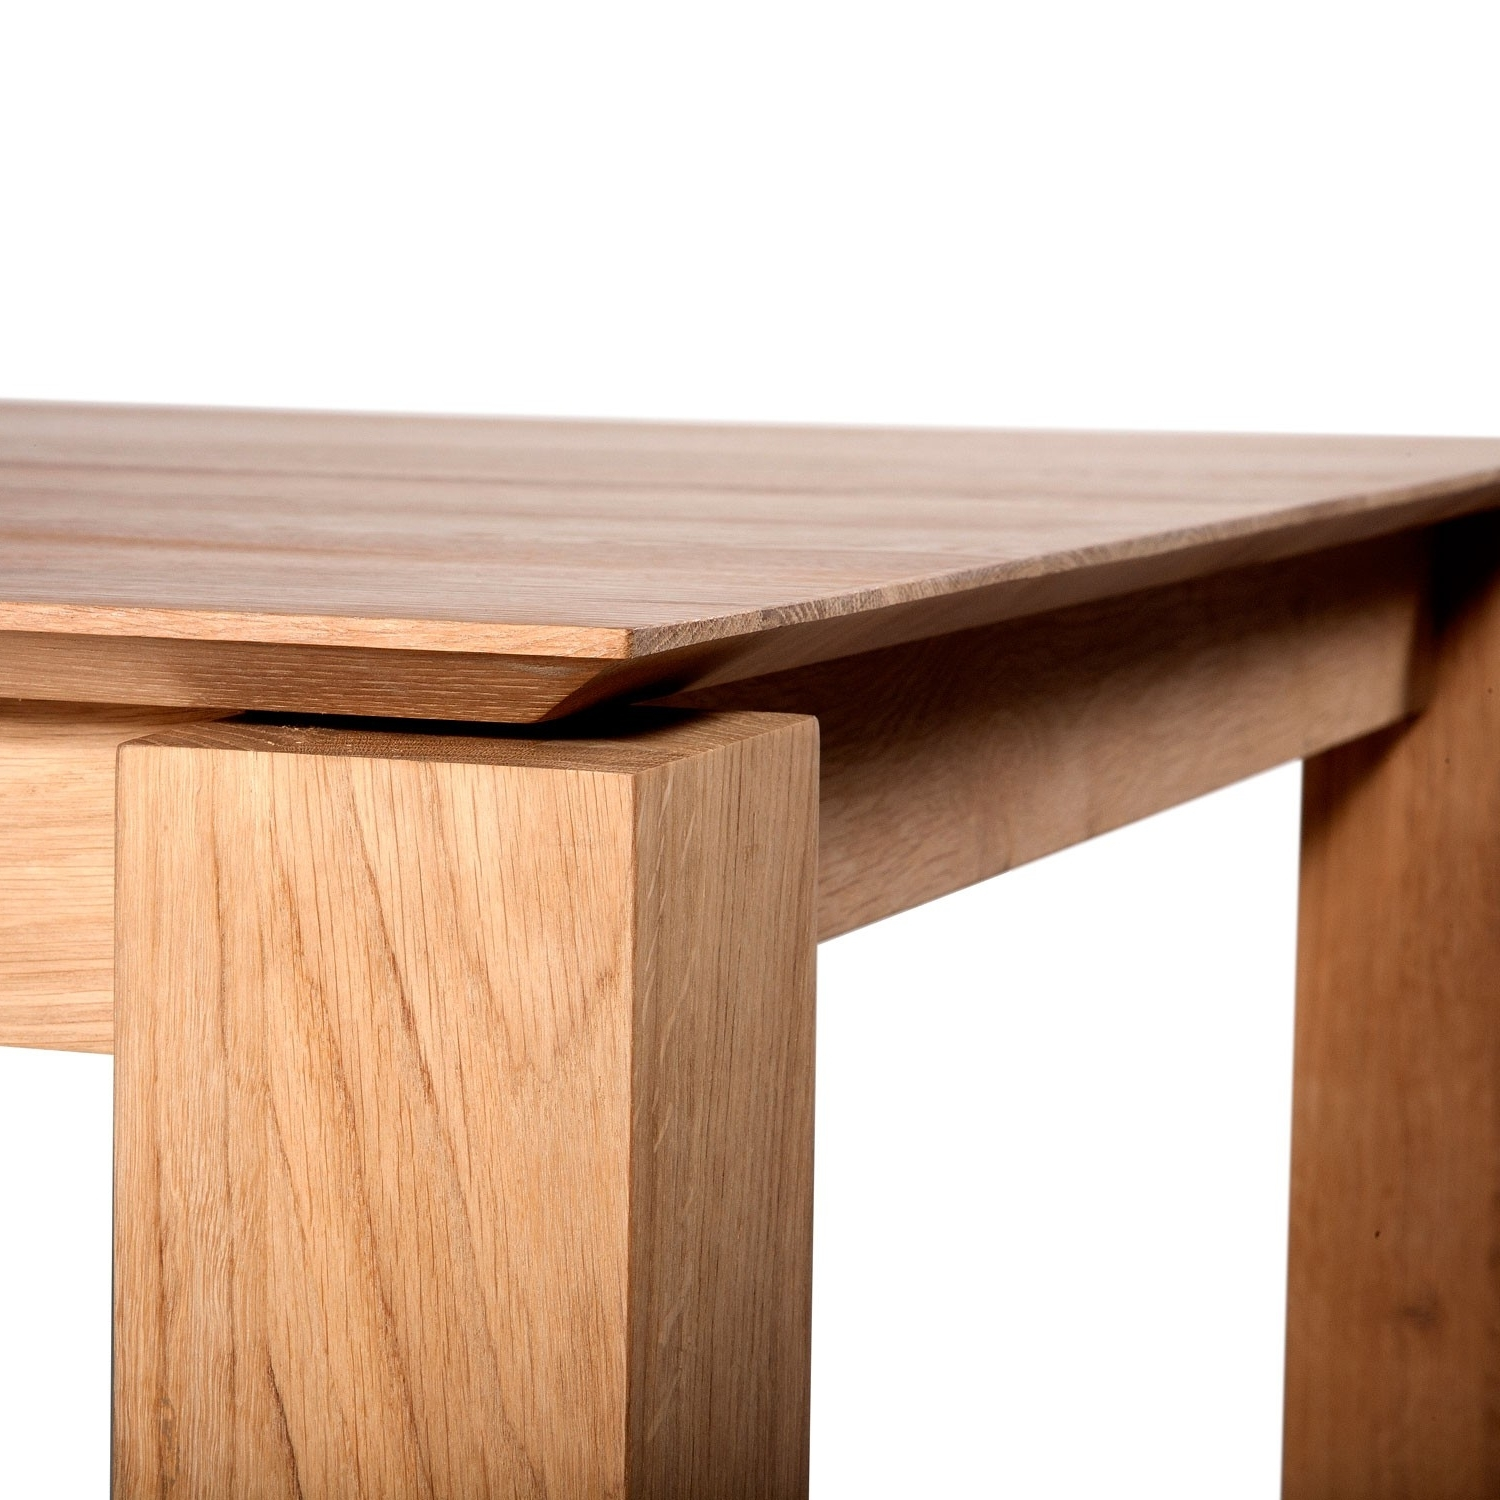 Ethnicraft Oak Slice Extending Dining Tables for Fashionable Oak Dining Tables